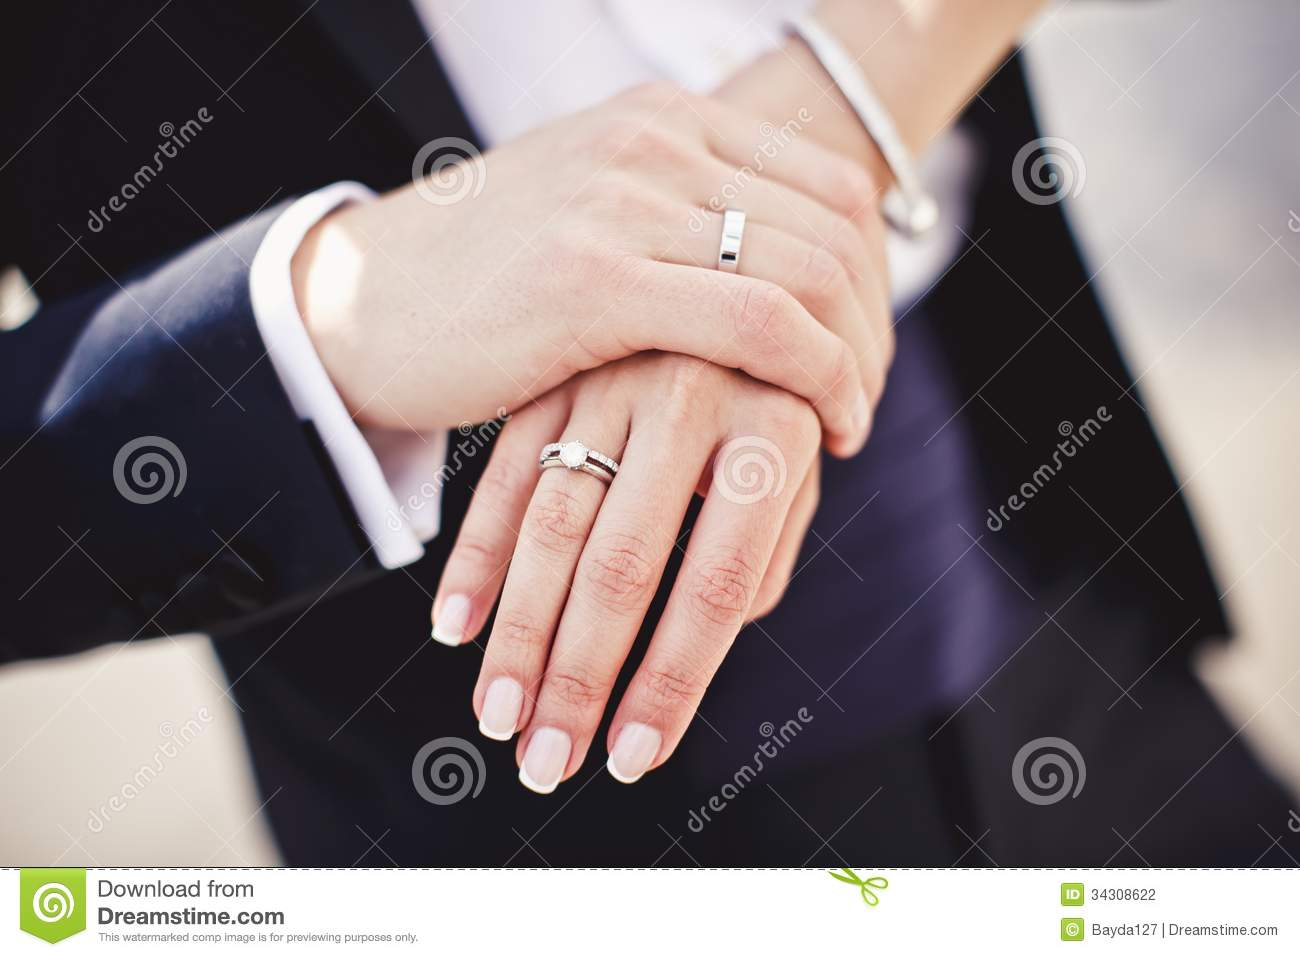 Close up of holding hands with wedding rings Wedding Rings Holding Hands